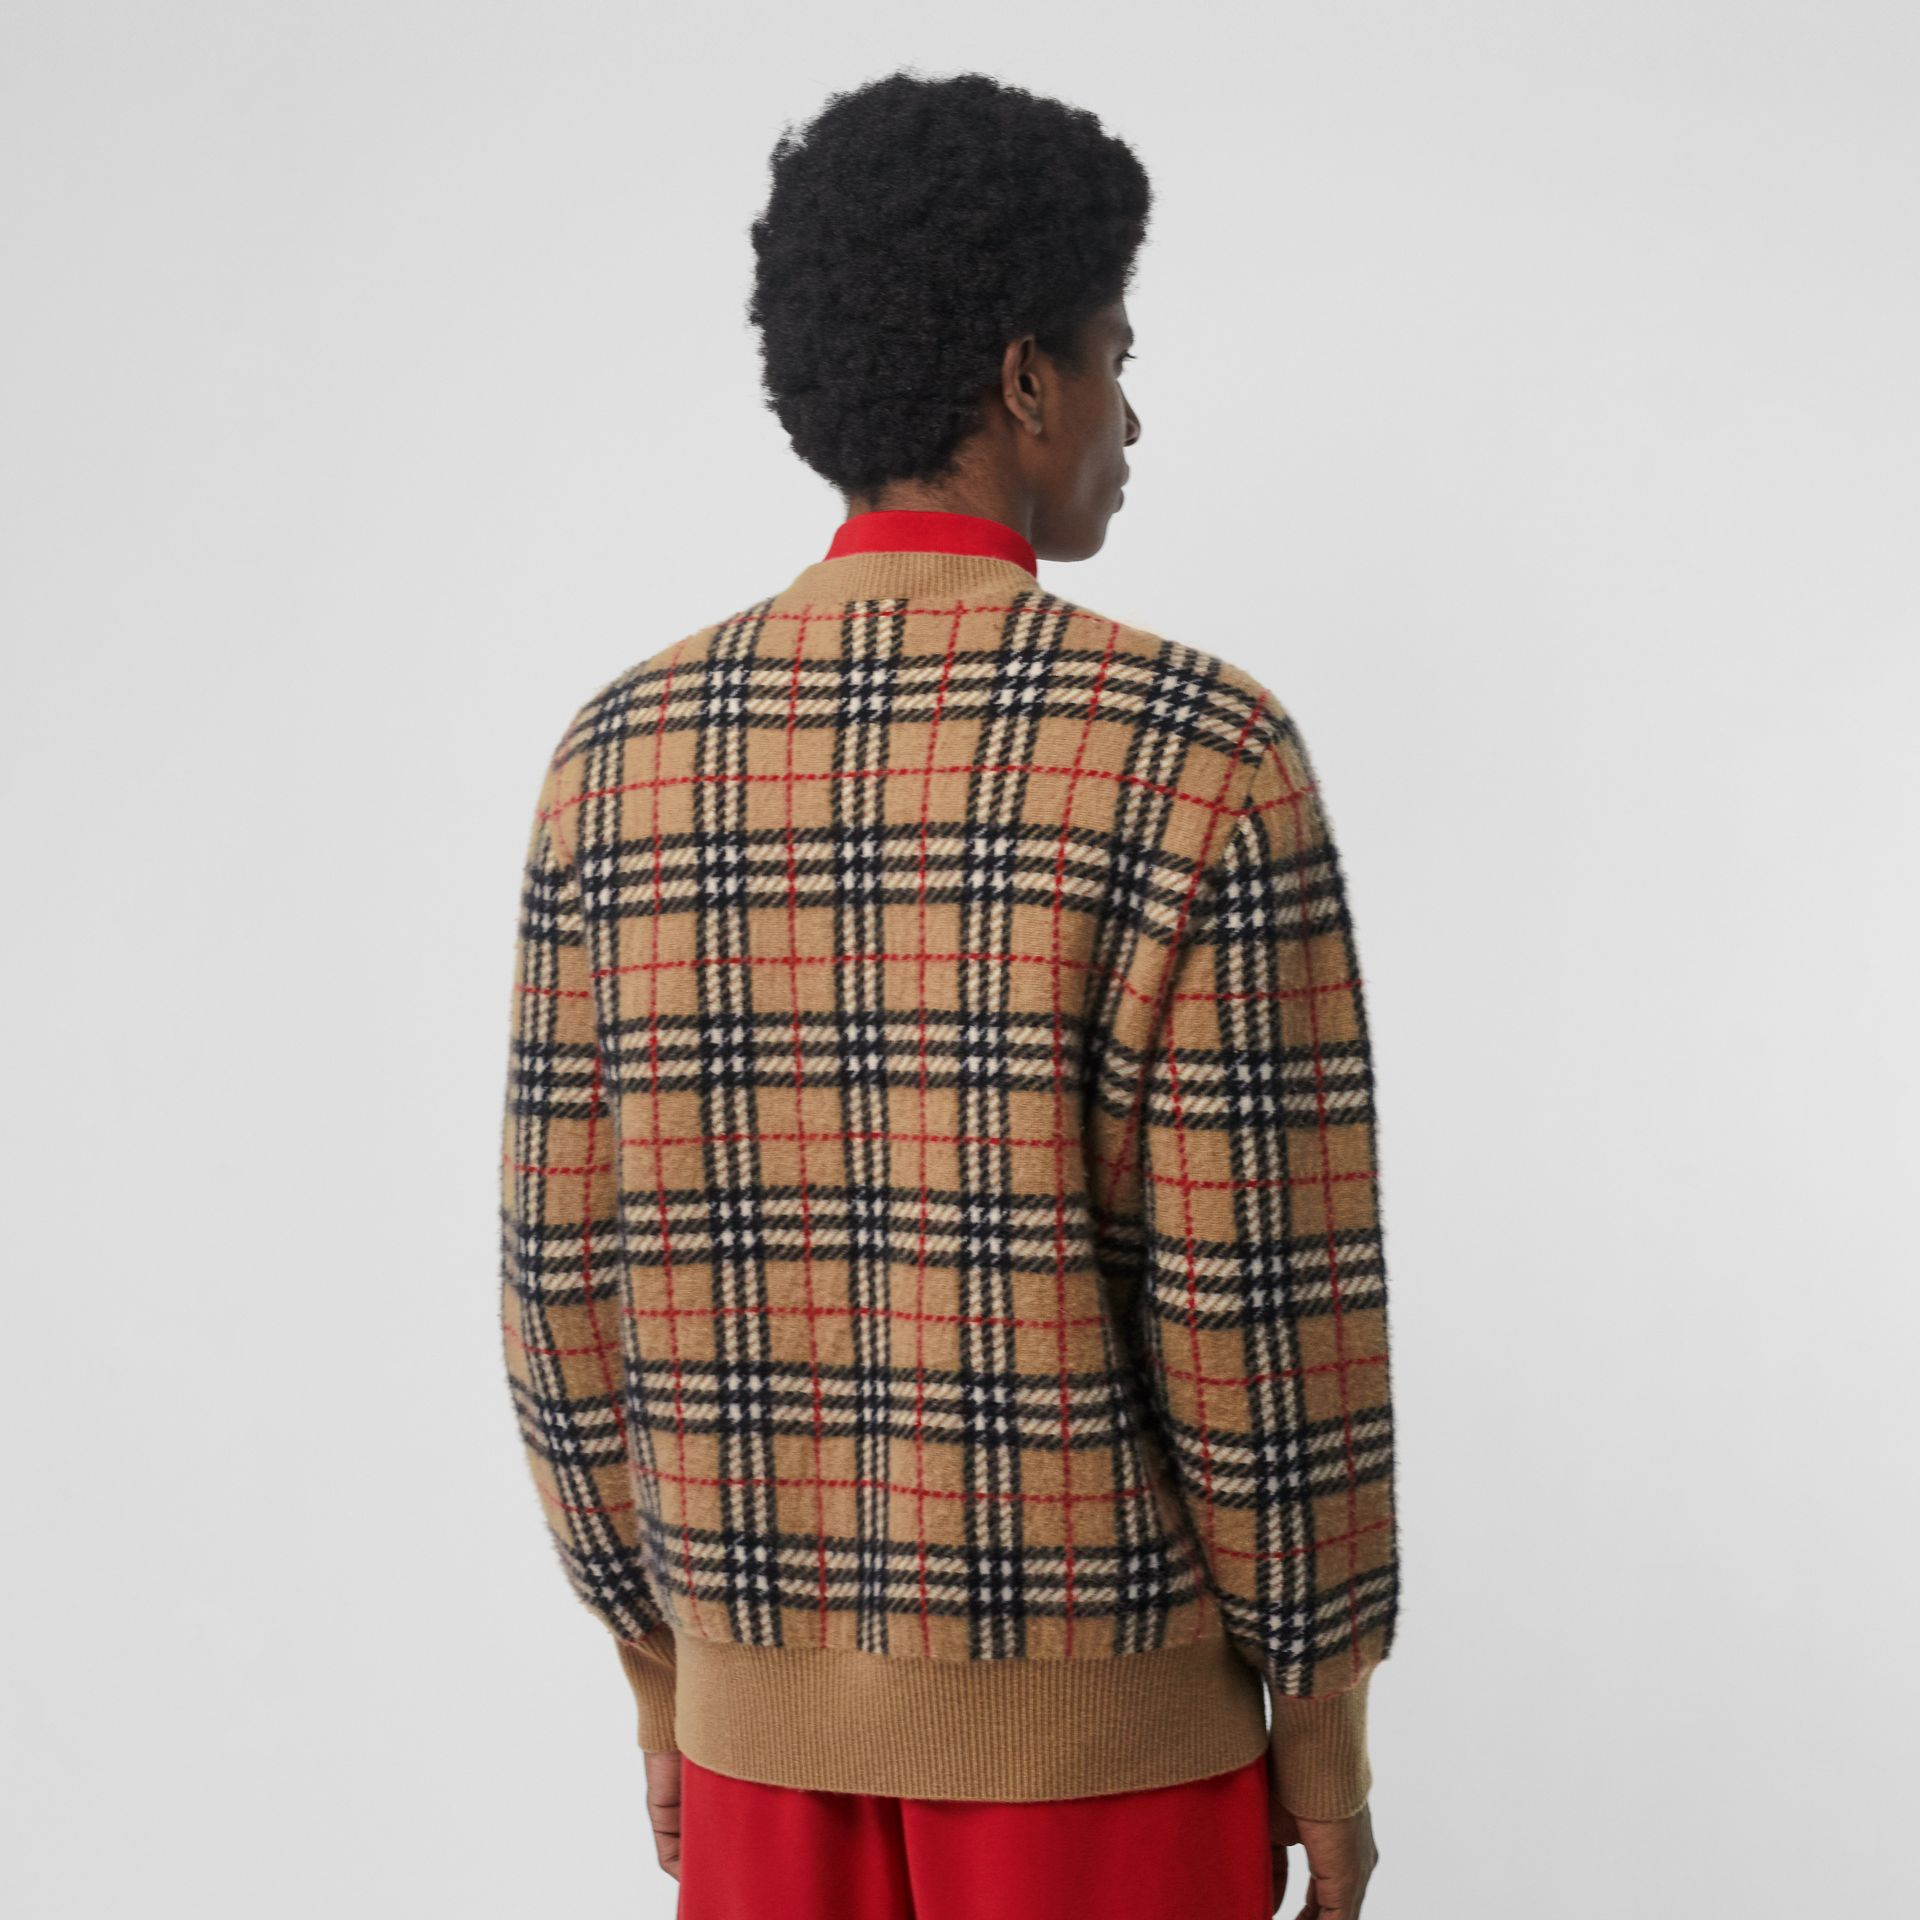 Vintage Check Cashmere Jacquard Sweater in Camel - Men | Burberry United States - gallery image 2